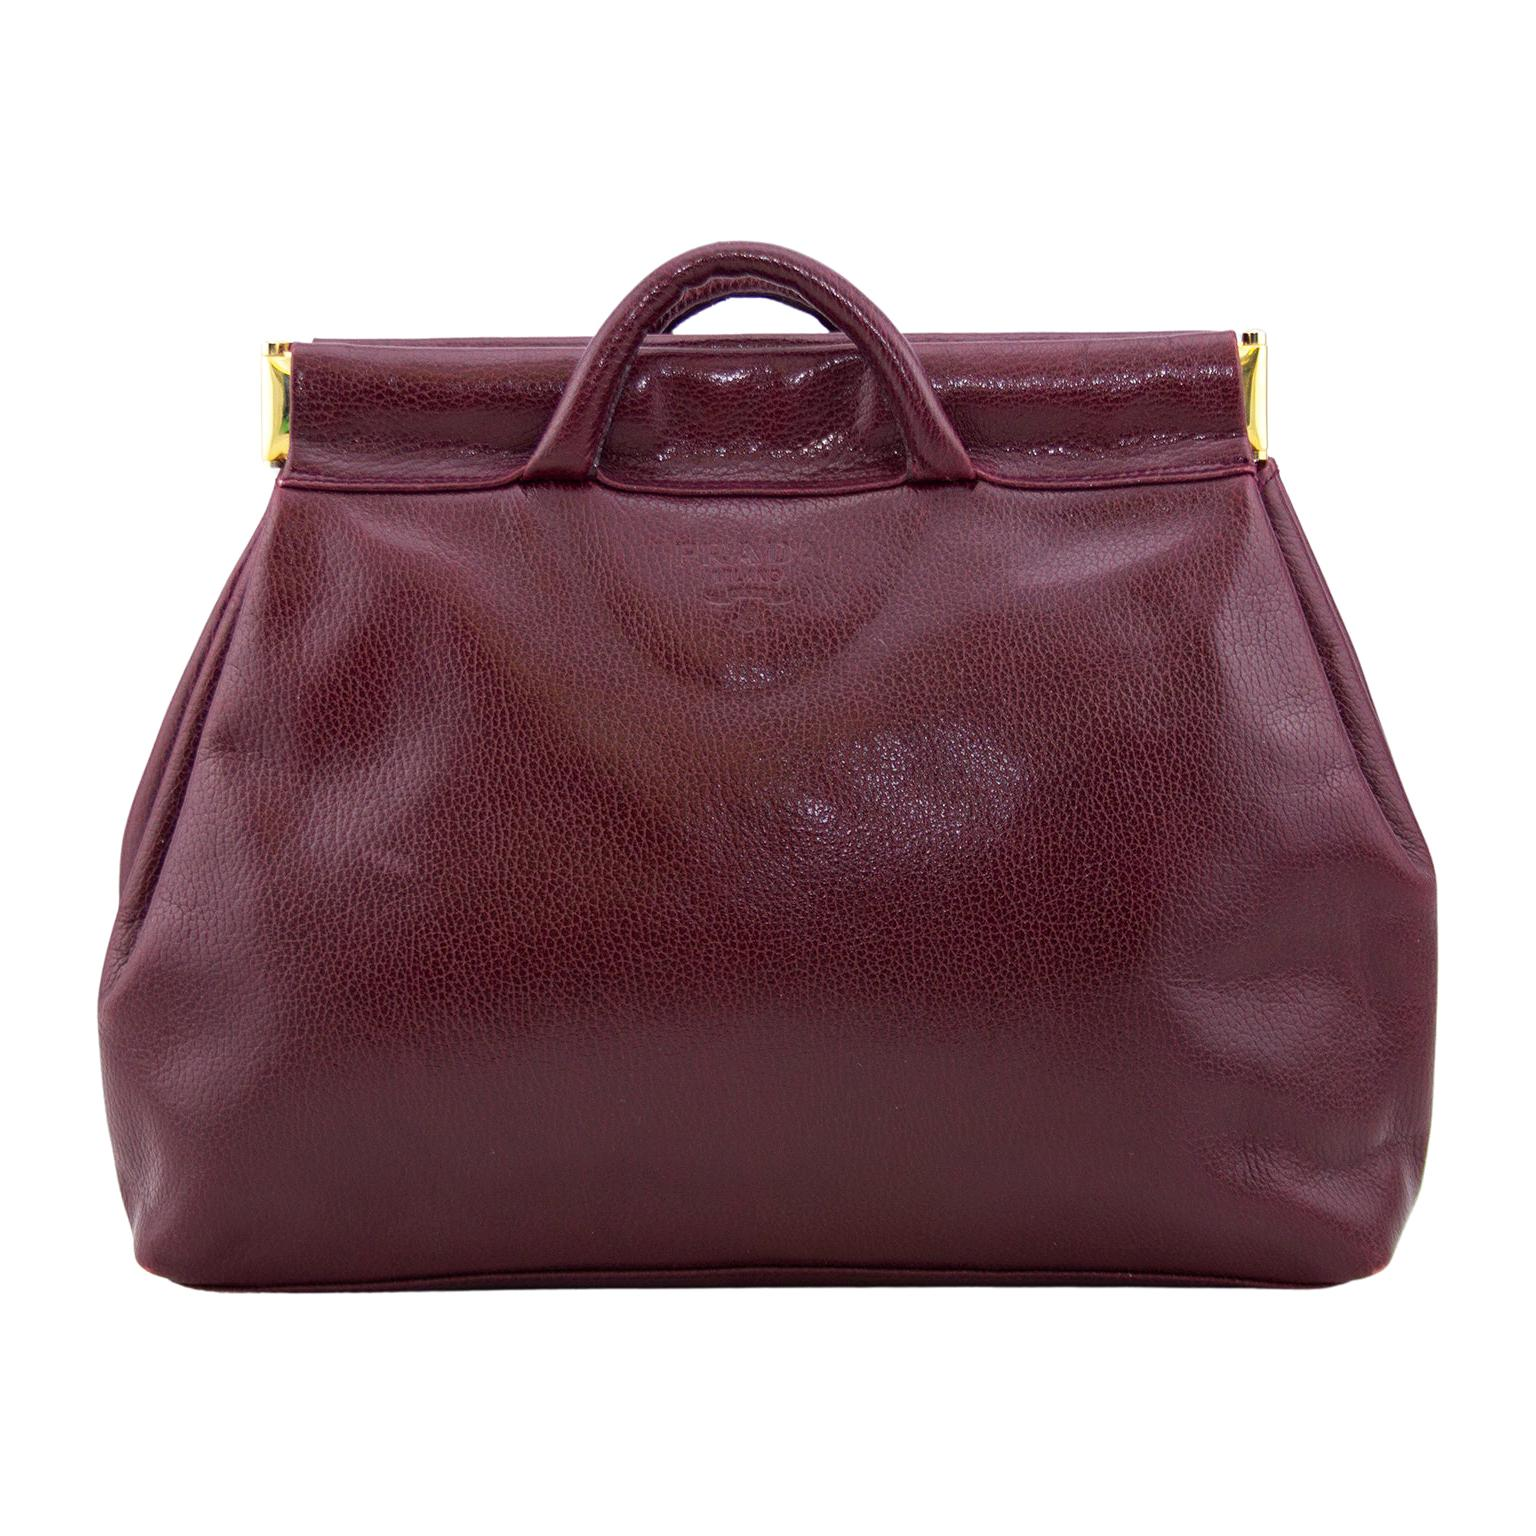 1990s Prada Maroon Leather Clutch with Small Handles